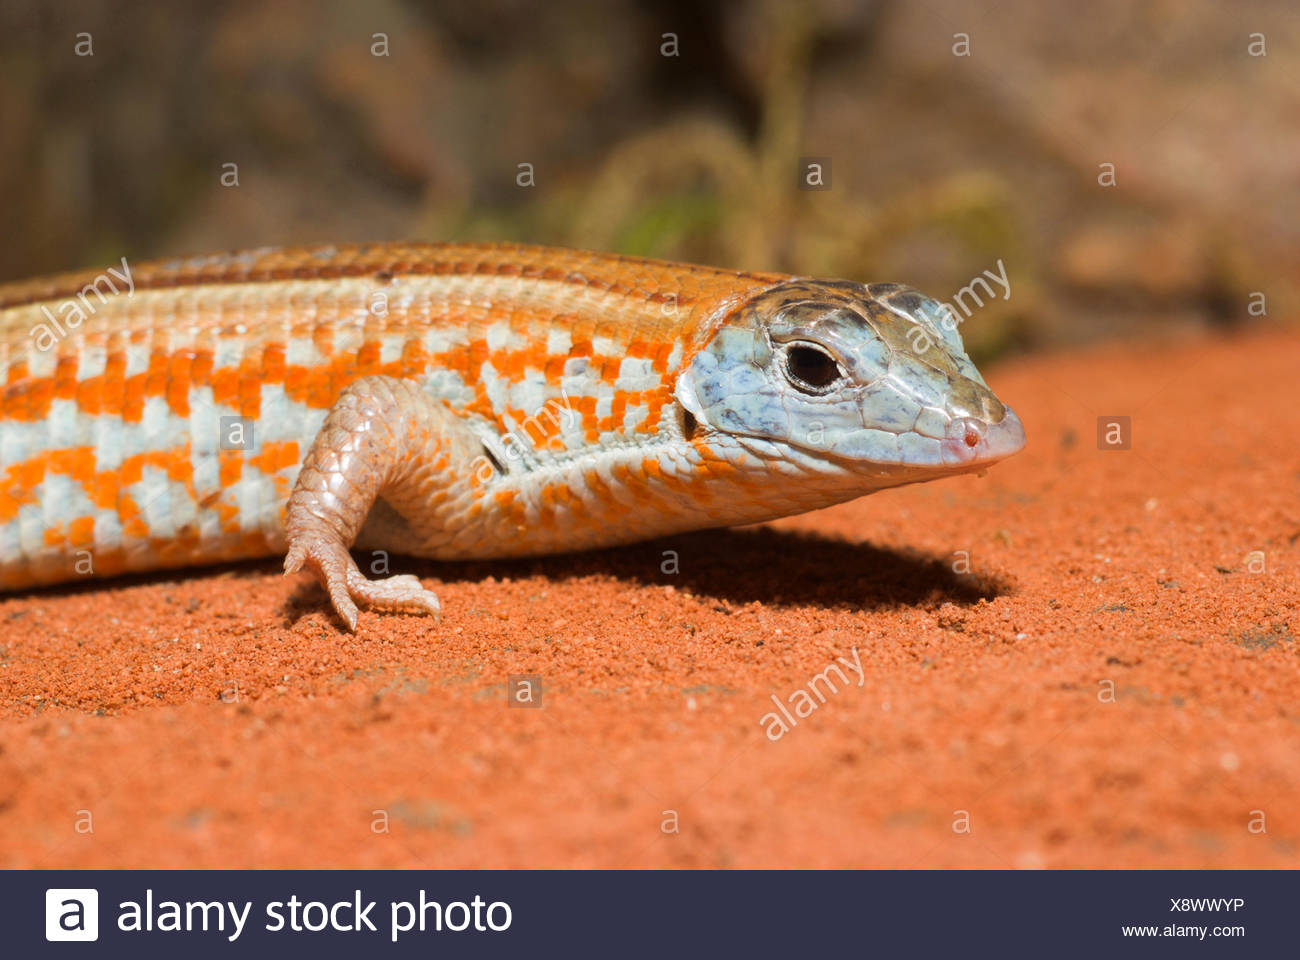 Malagasy plated lizard (Tracheloptychus petersi), on the sandy ground - Stock Image